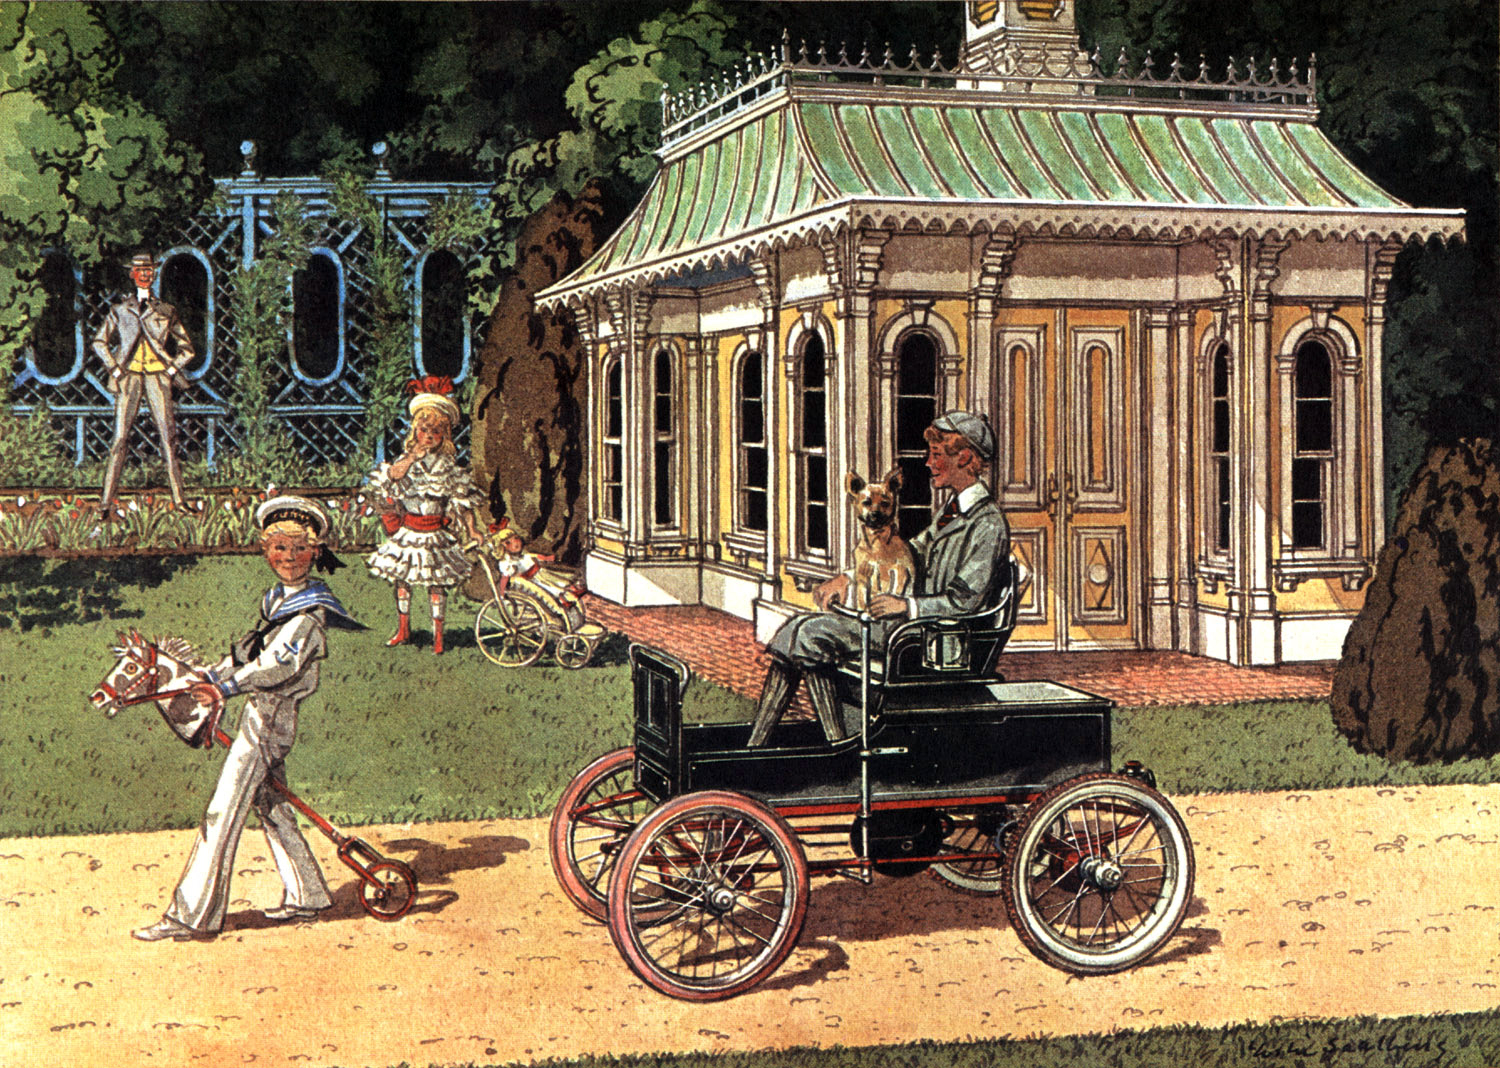 1907 Juvenile Electric Child's Car - Illustrated by Leslie Saalburg